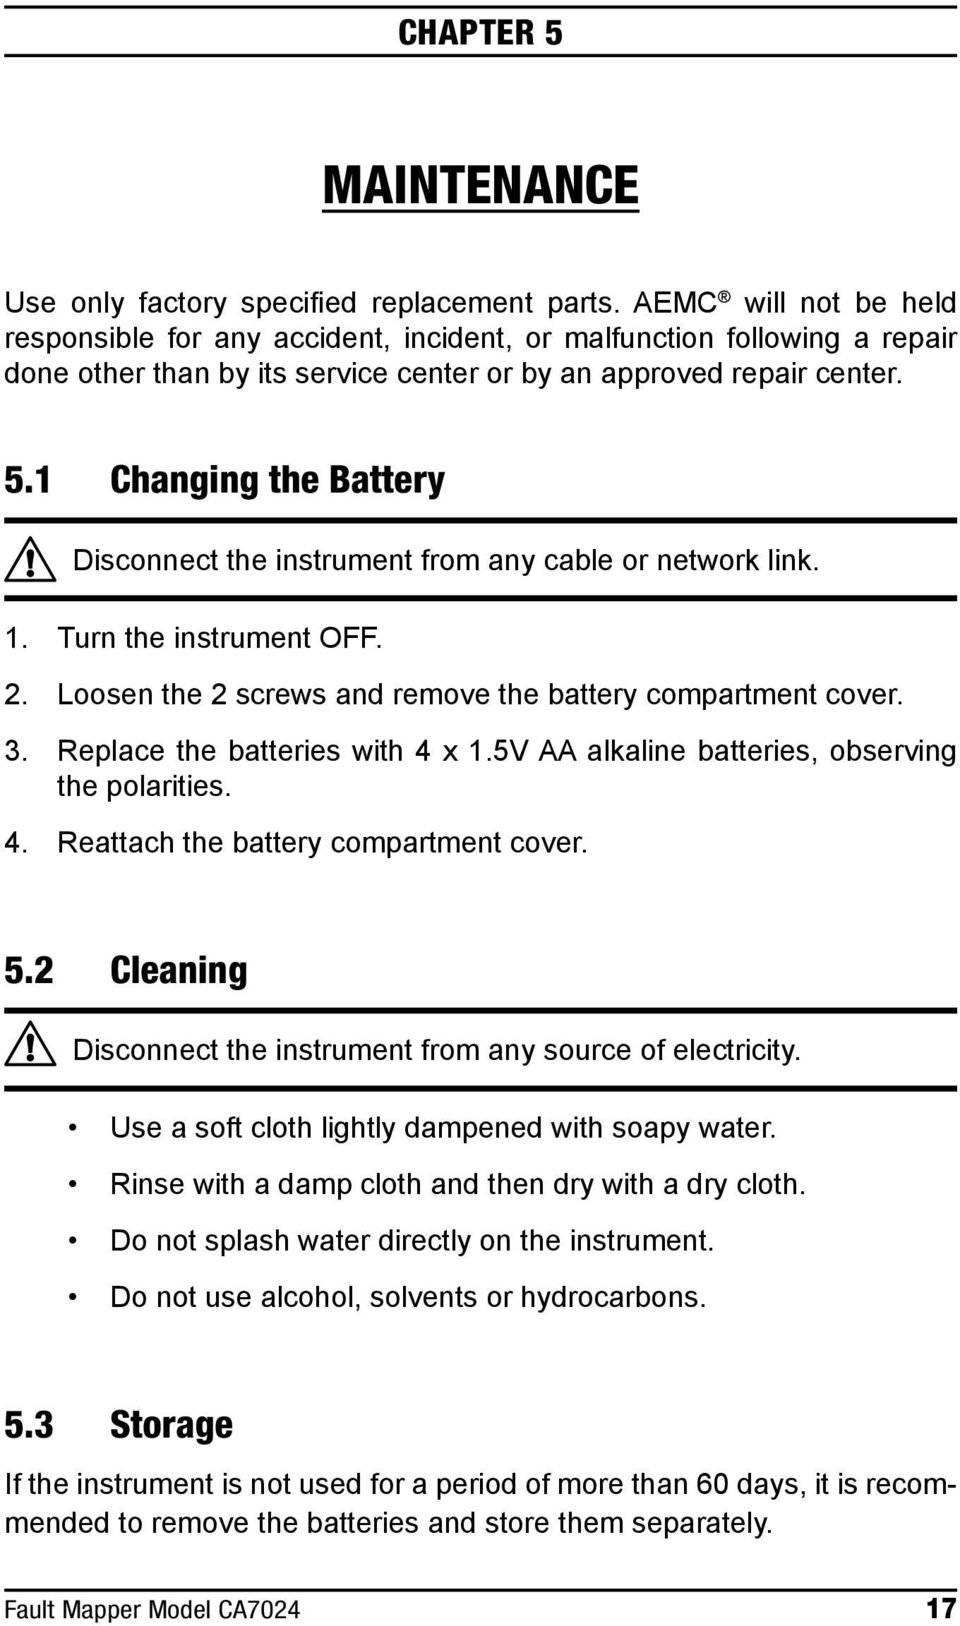 1 Changing the Battery Disconnect the instrument from any cable or network link. 1. Turn the instrument OFF. 2. Loosen the 2 screws and remove the battery compartment cover. 3.